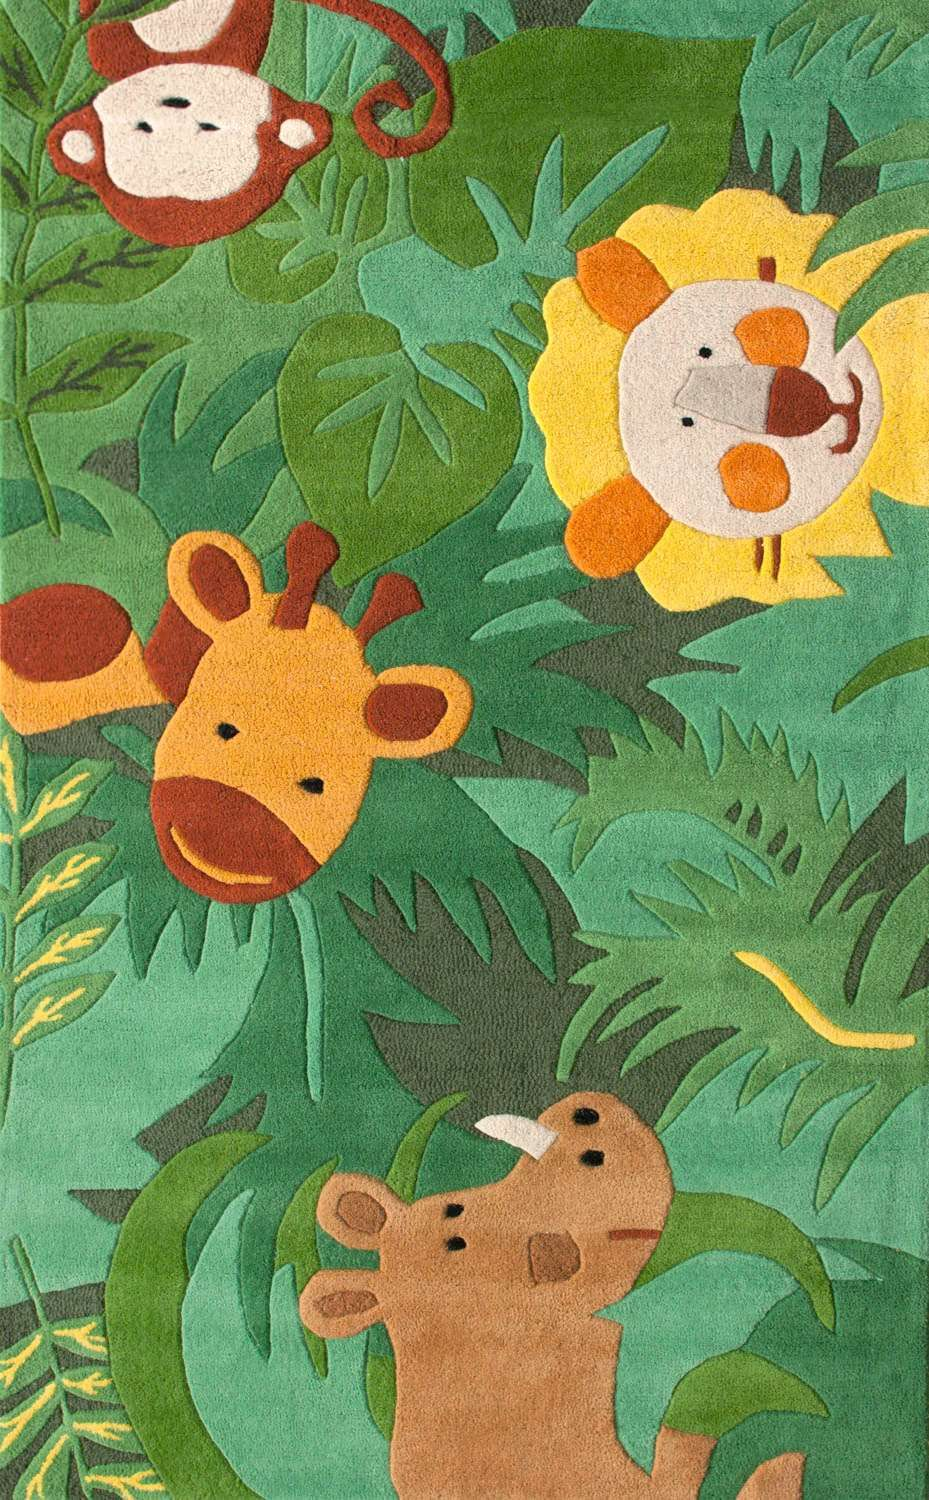 Bring A Smile To Your Children S Faces With This Colorful Adorable Safari Themed And Hand Tufted Wool Rug Well Made Heavy Thick Piled Plush